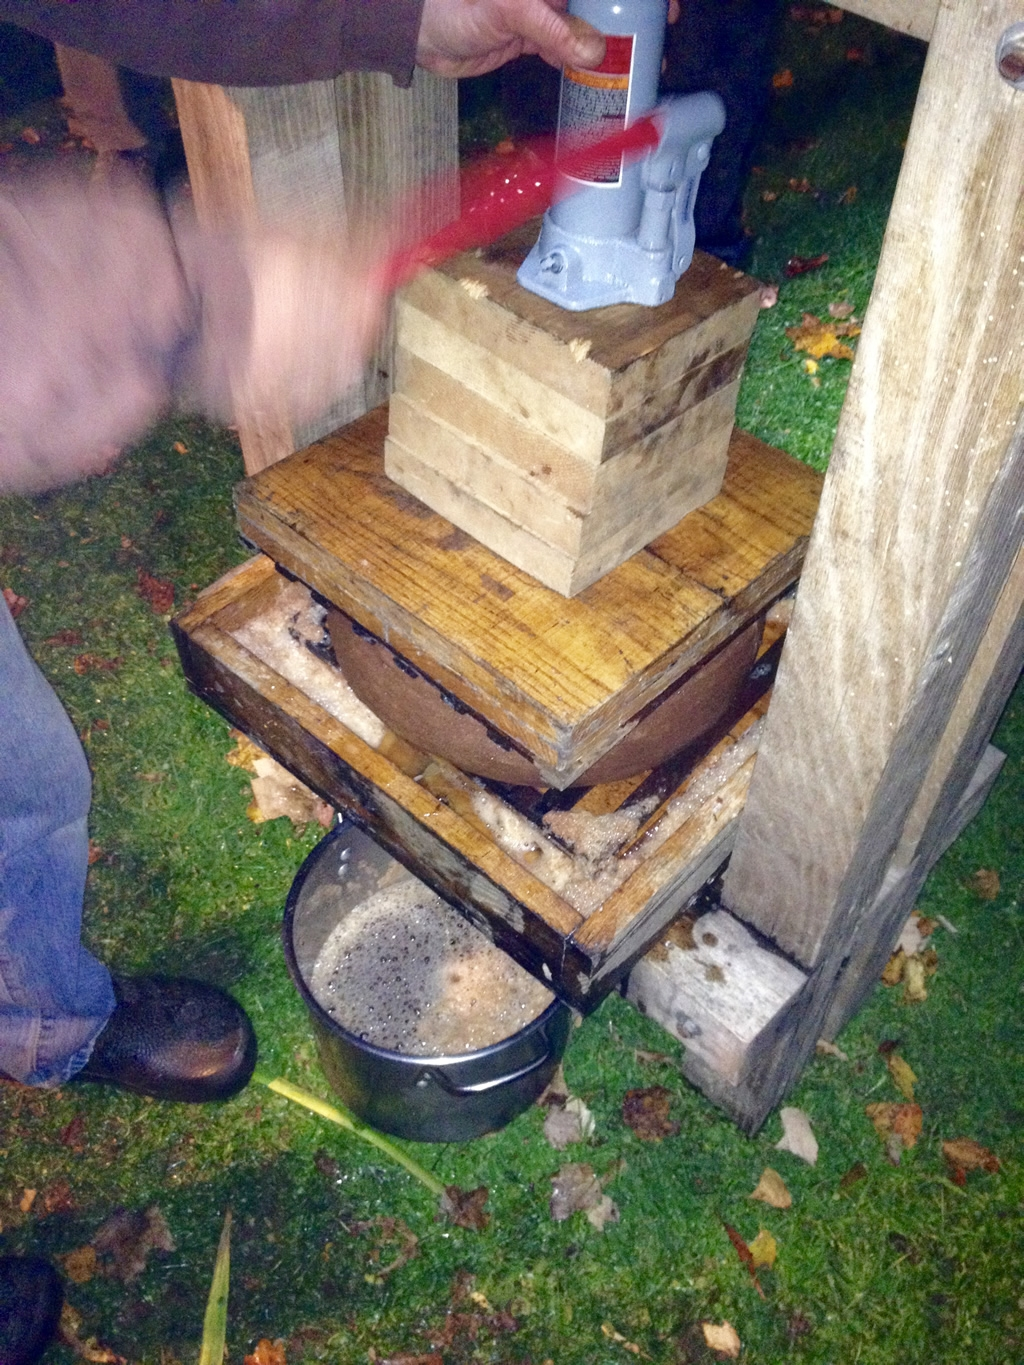 Apple Press in Action